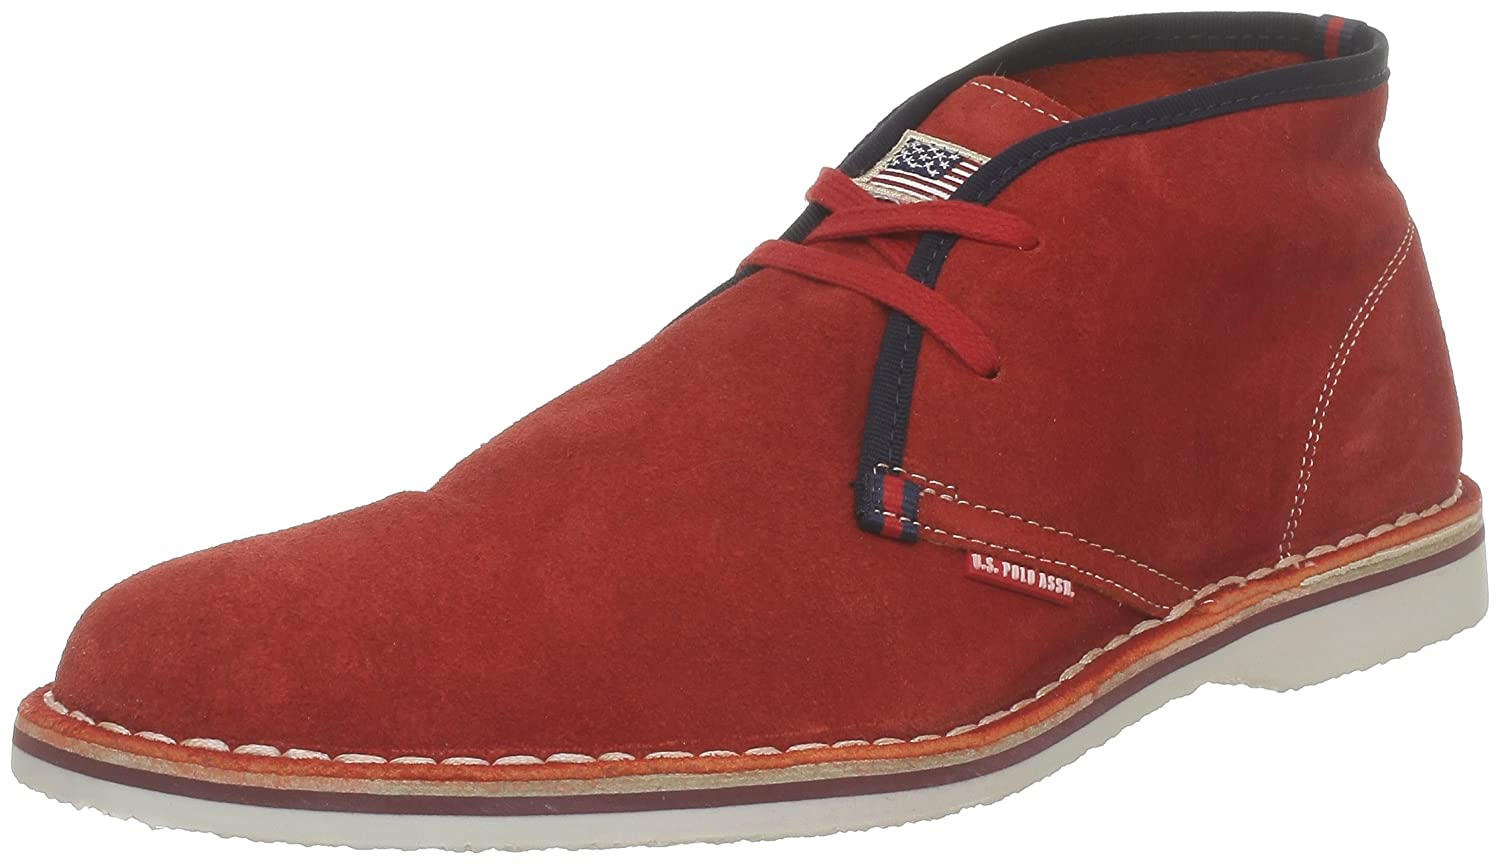 US Polo Assn Drake, Chaussures à lacets homme - Rouge (Red), 40 EUU.S.Polo Association